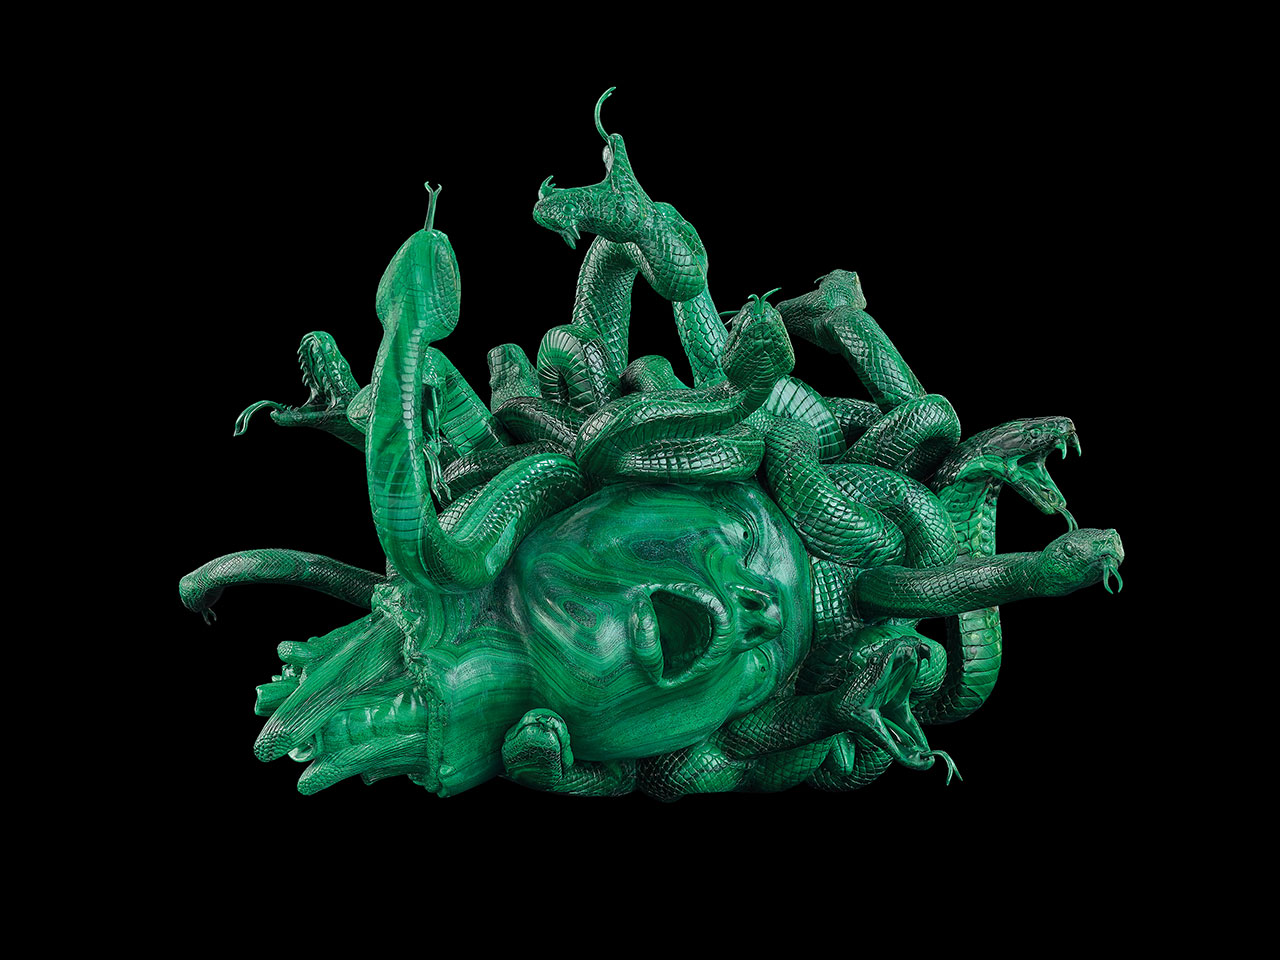 Damien Hirst, The Severed Head of Medusa. Photographed by Prudence Cuming Associates © Damien Hirst and Science Ltd. All rights reserved, DACS/SIAE 2017.